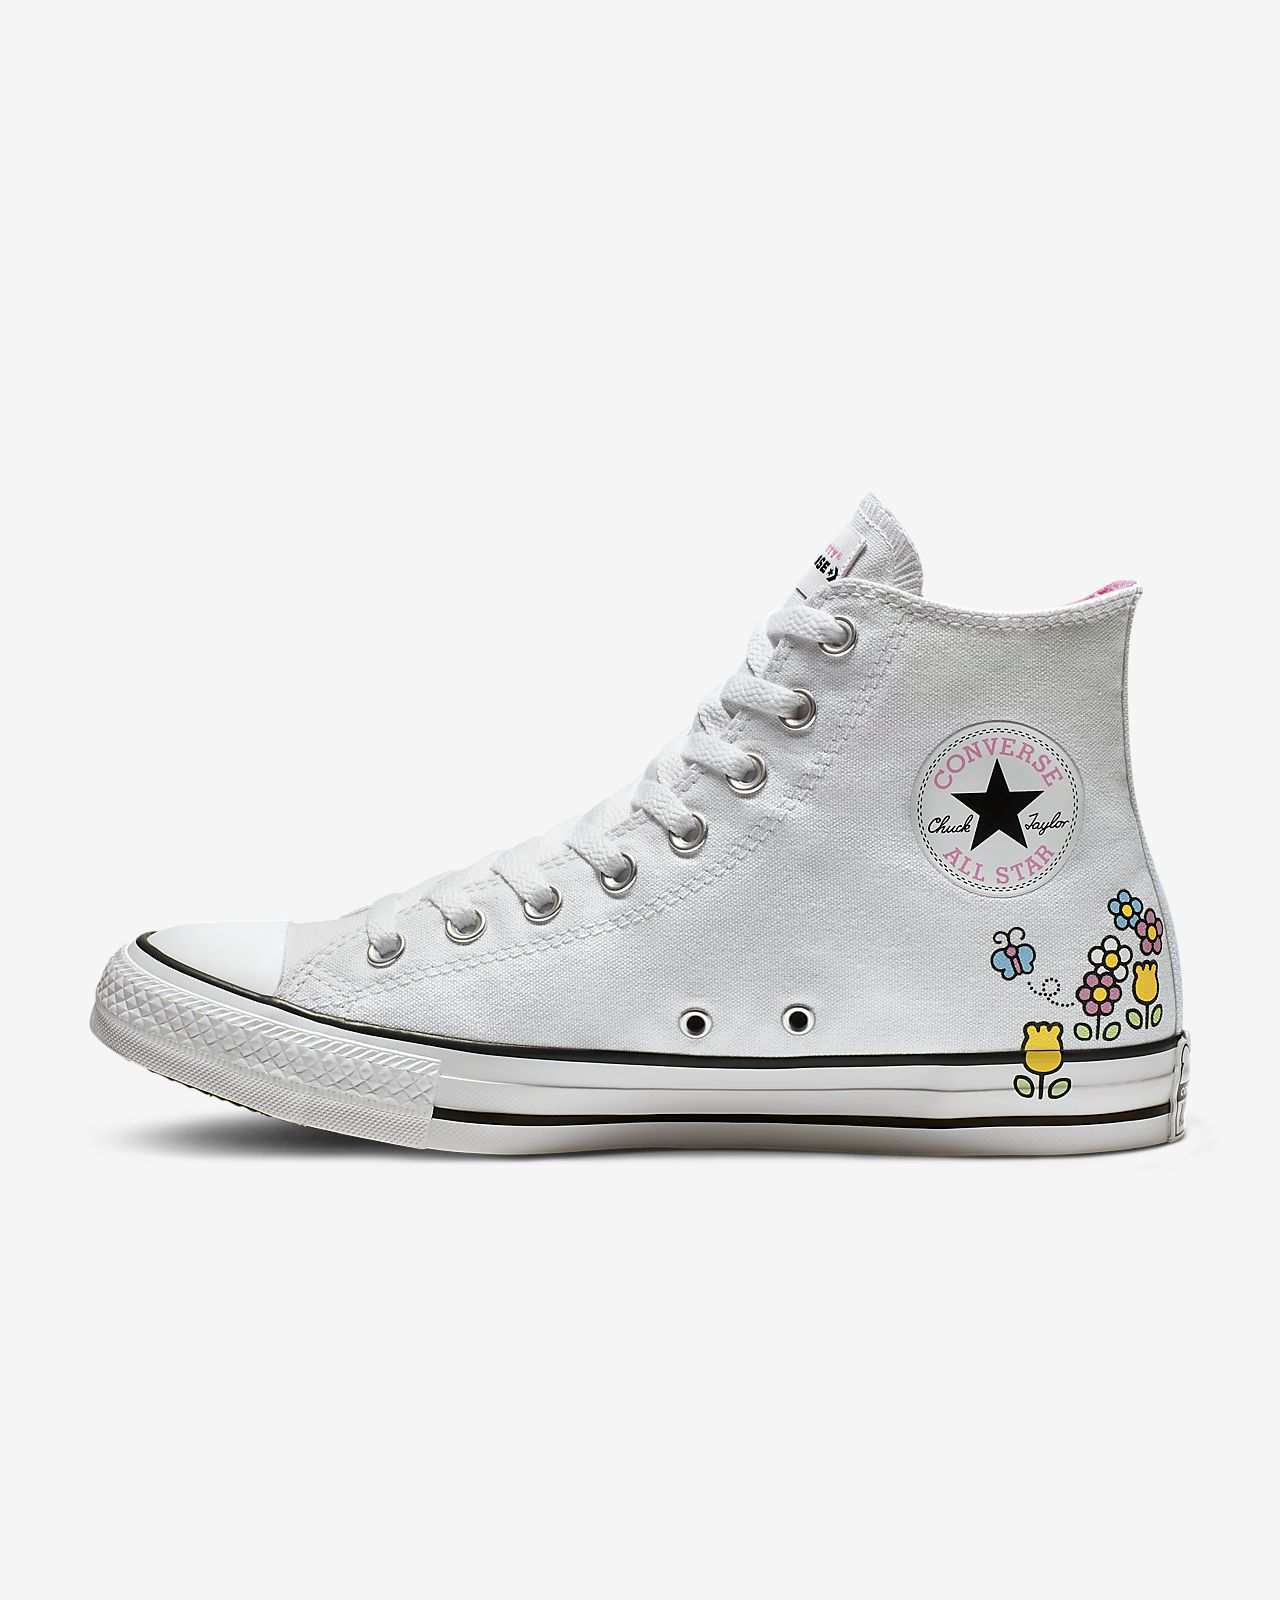 Converse x Hello Kitty Chuck Taylor All Star High Top Unisex Shoe